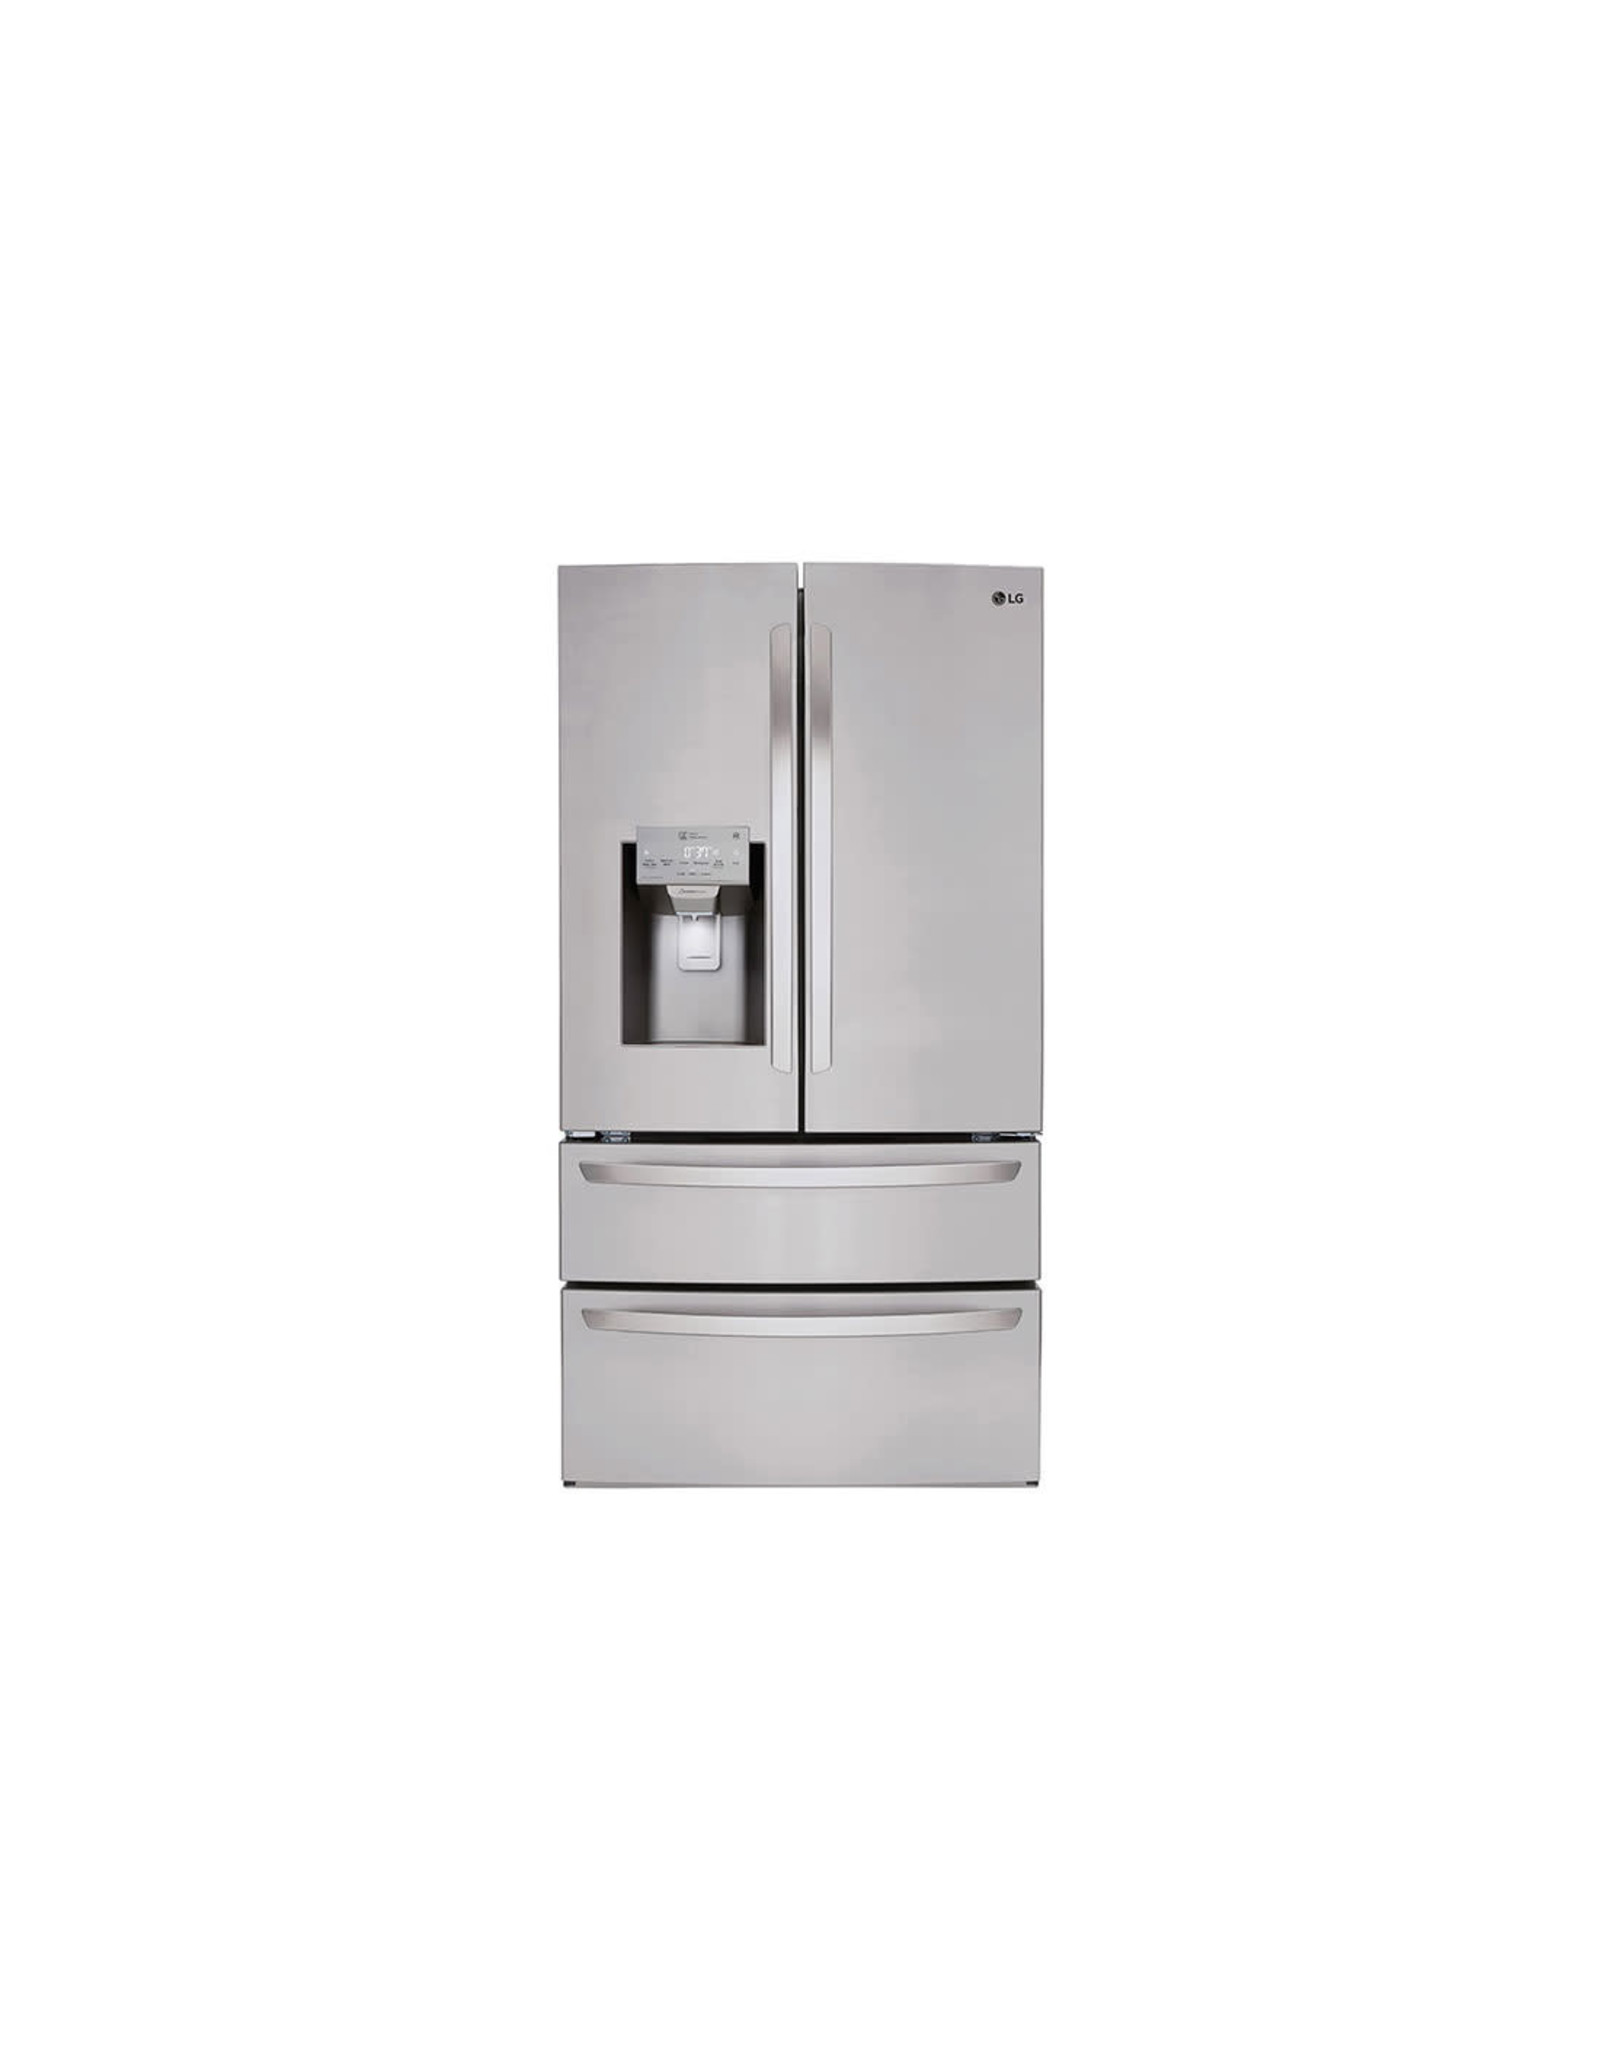 lg LMX528626S 27.8 cu. ft. 4 Door French Door Smart Refrigerator with 2 Freezer Drawers and Wi-Fi Enabled in Stainless Steel